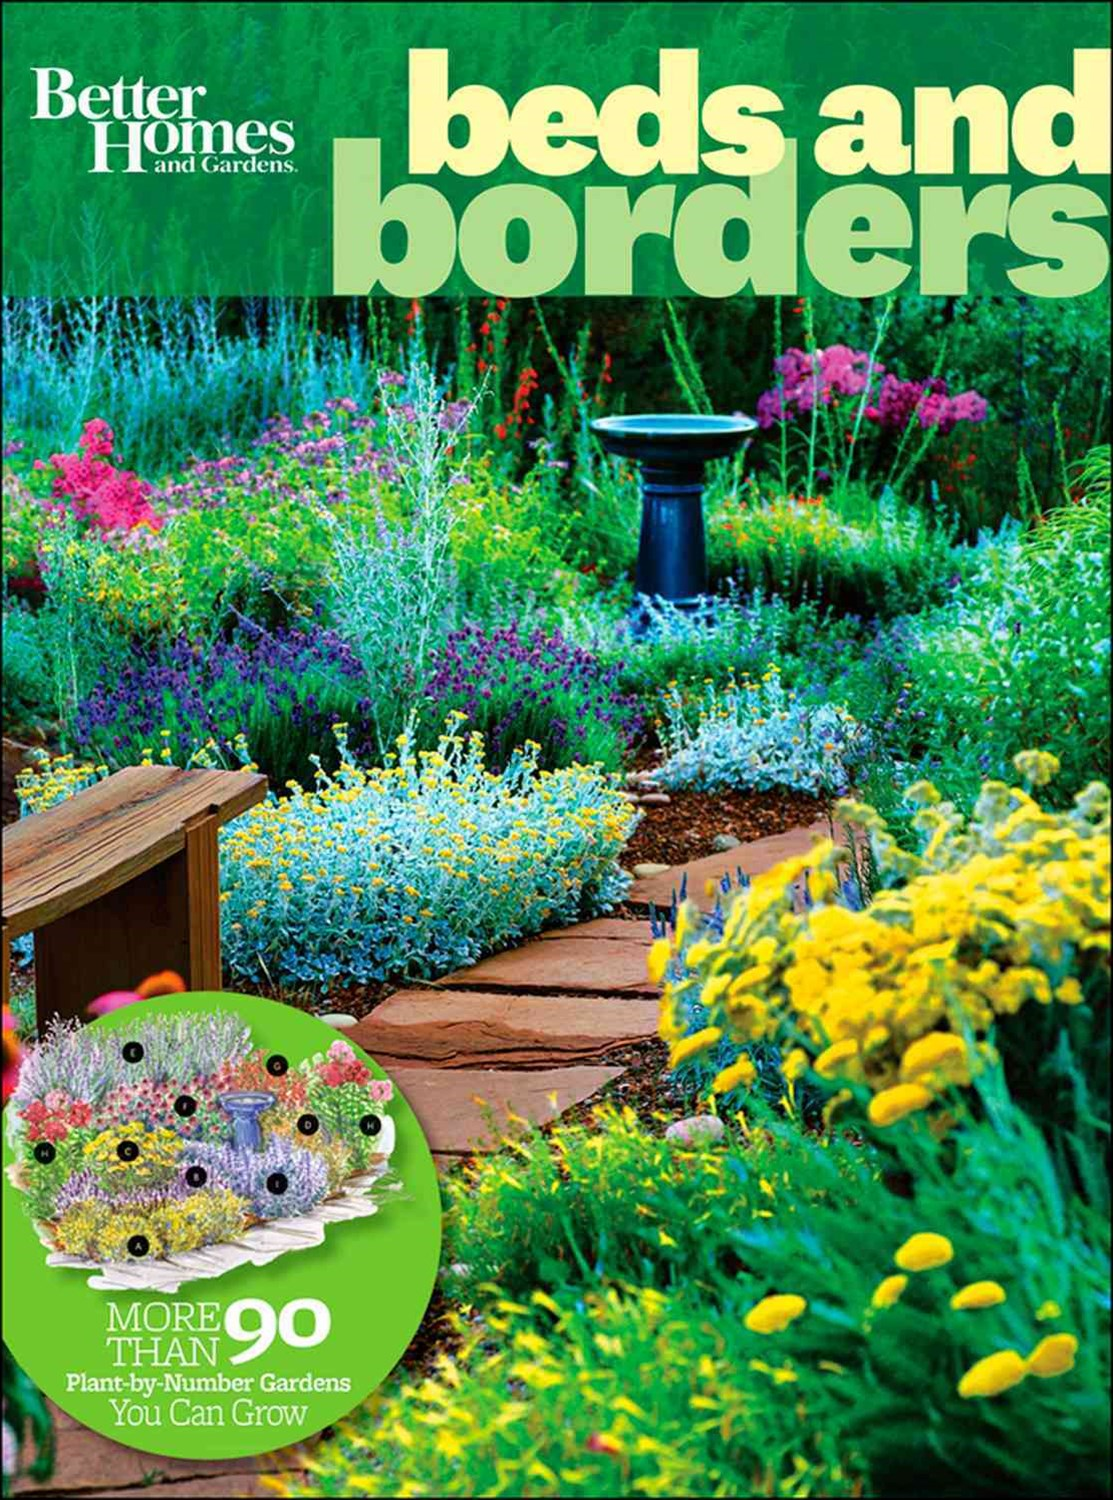 Beds and Borders: Better Homes and Gardens